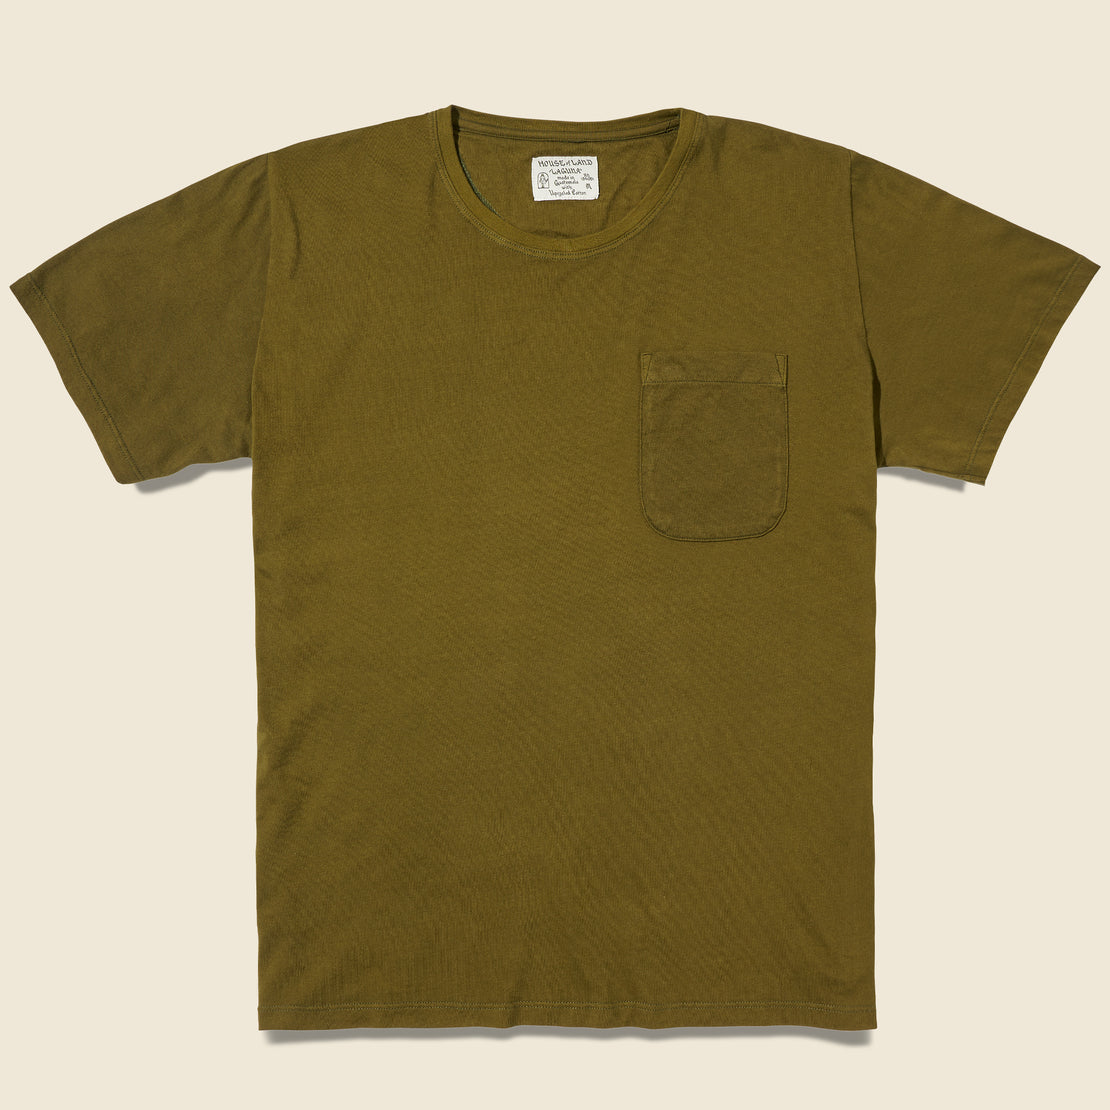 House of LAND Laguna Pocket Tee - Verde